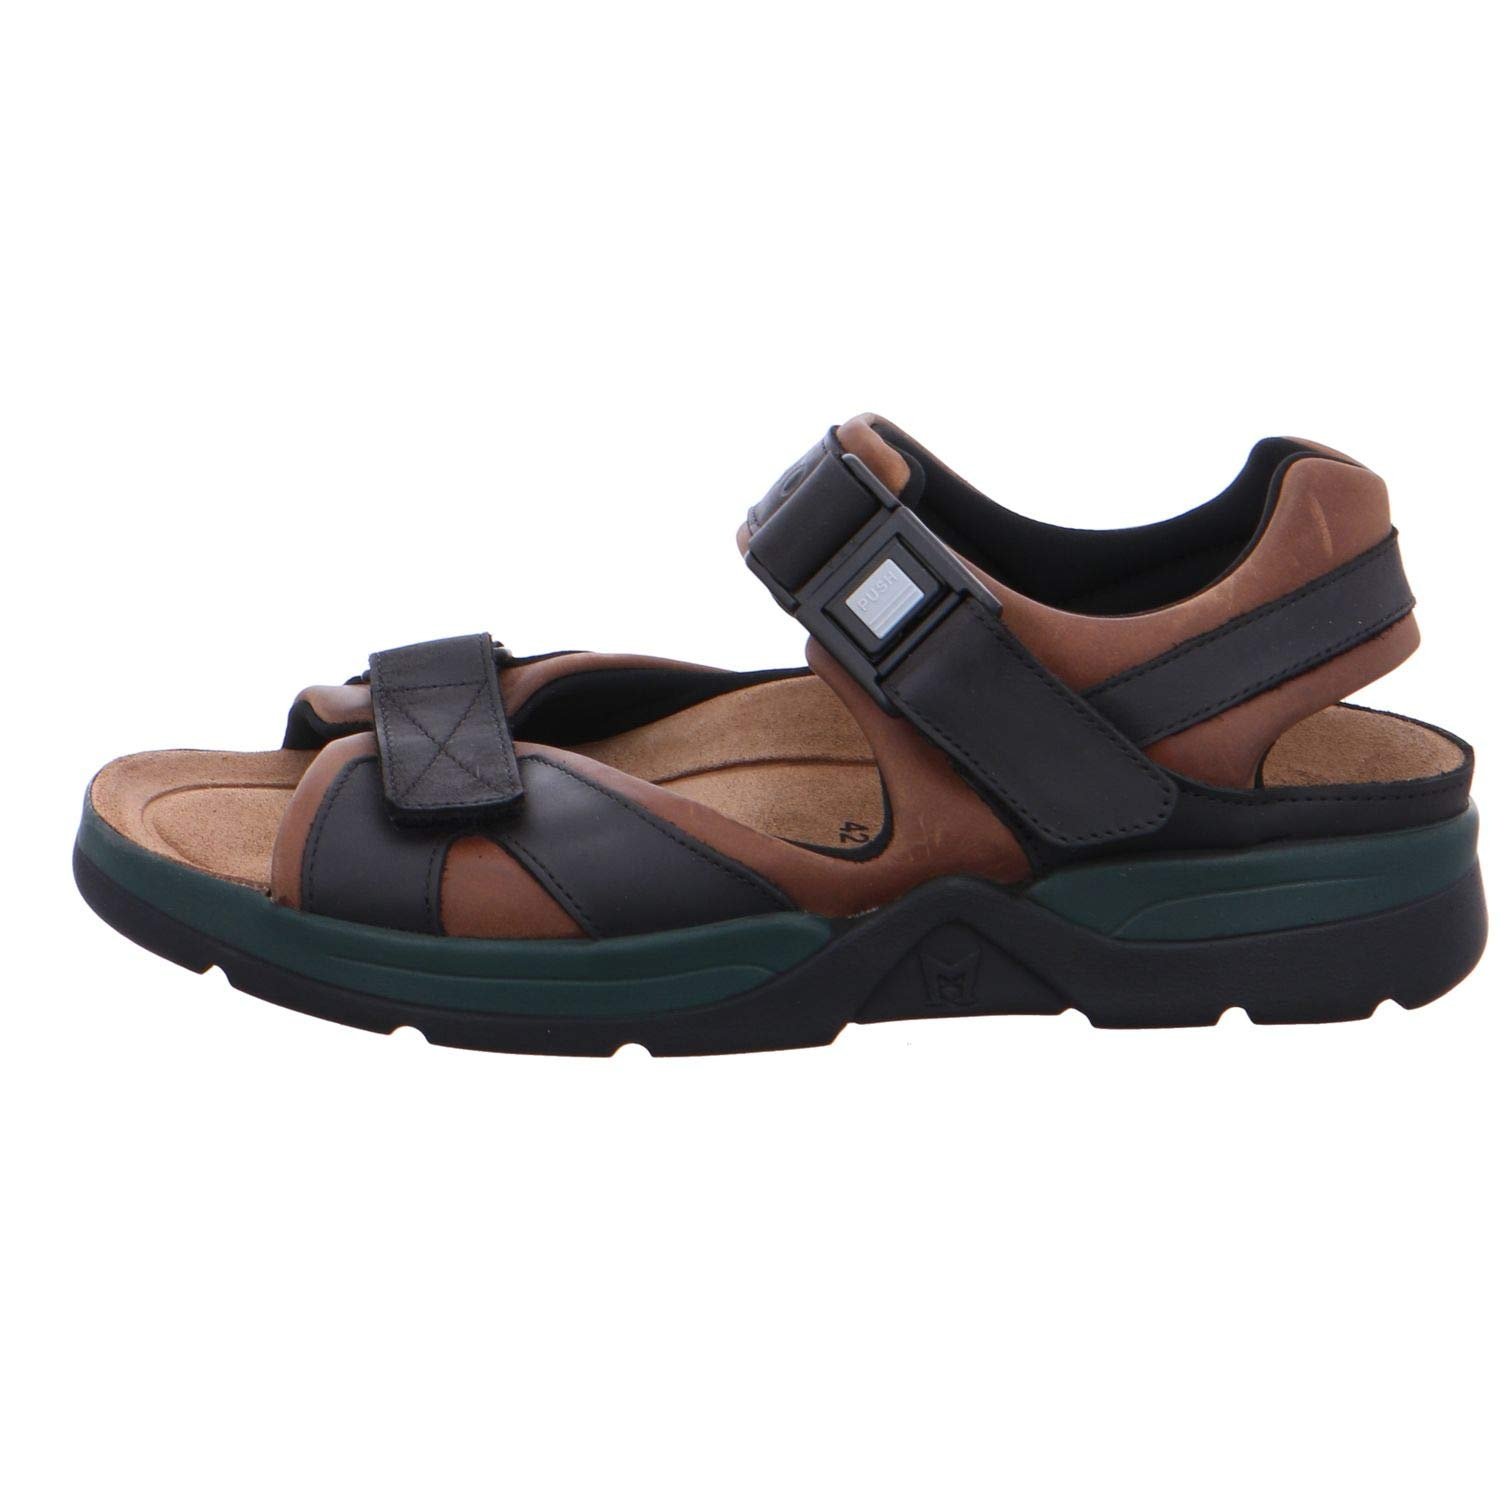 Mephisto Mens Shark Fit Leather Sandals